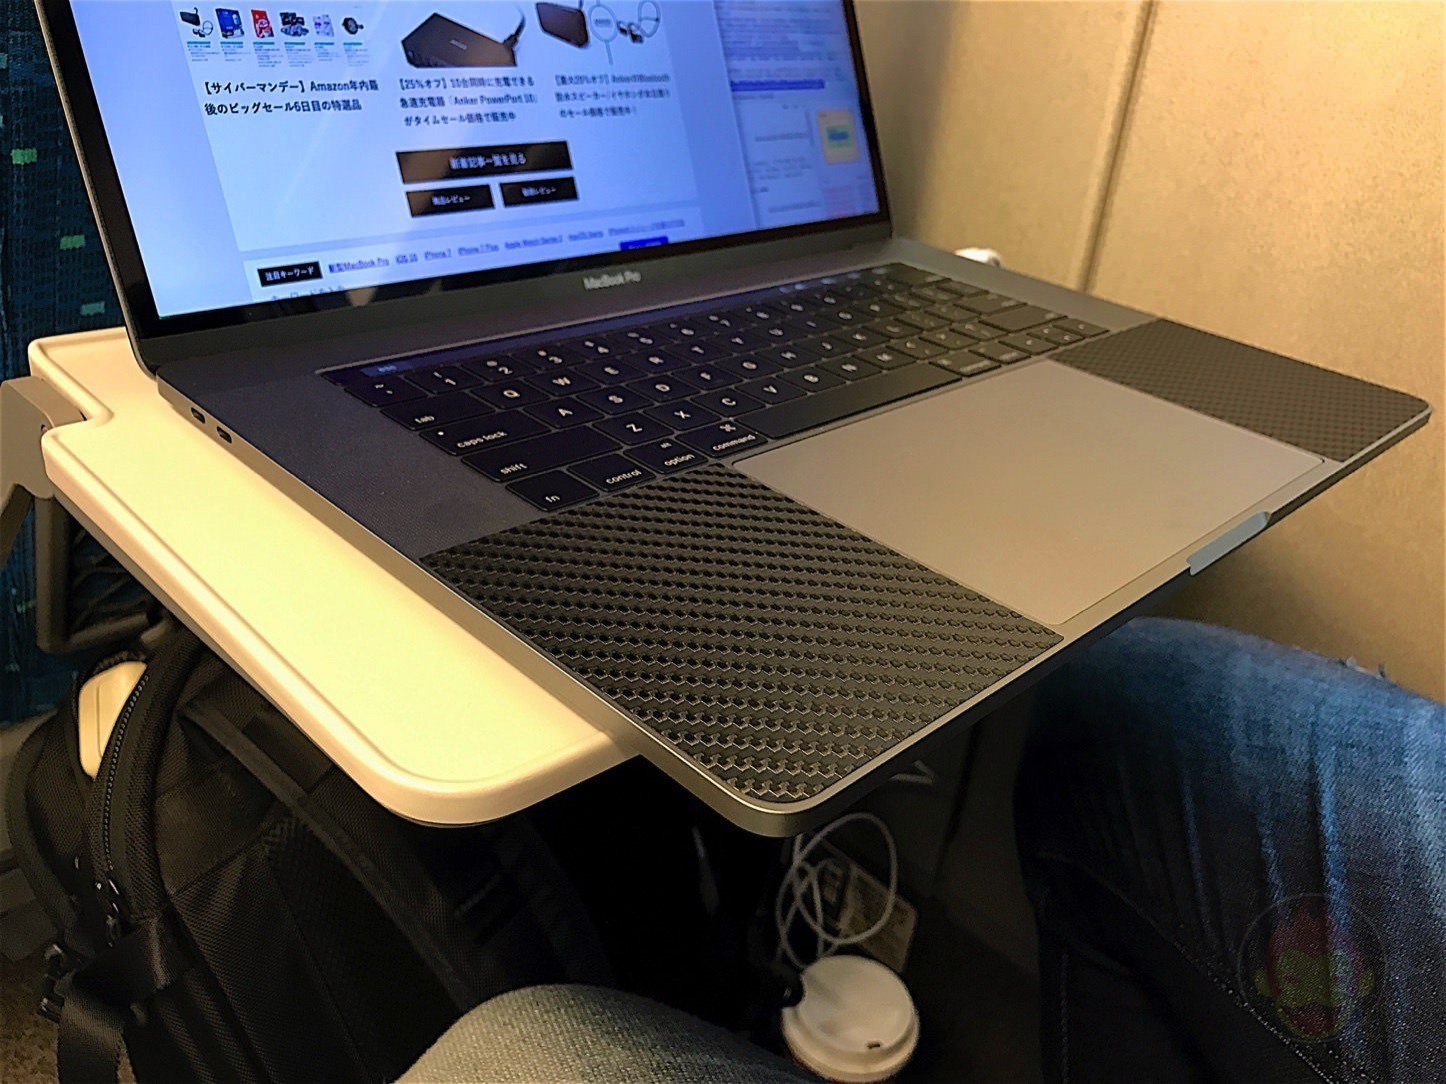 Using-the-MacBookProLate2016-on-Shinkansen-05.jpg